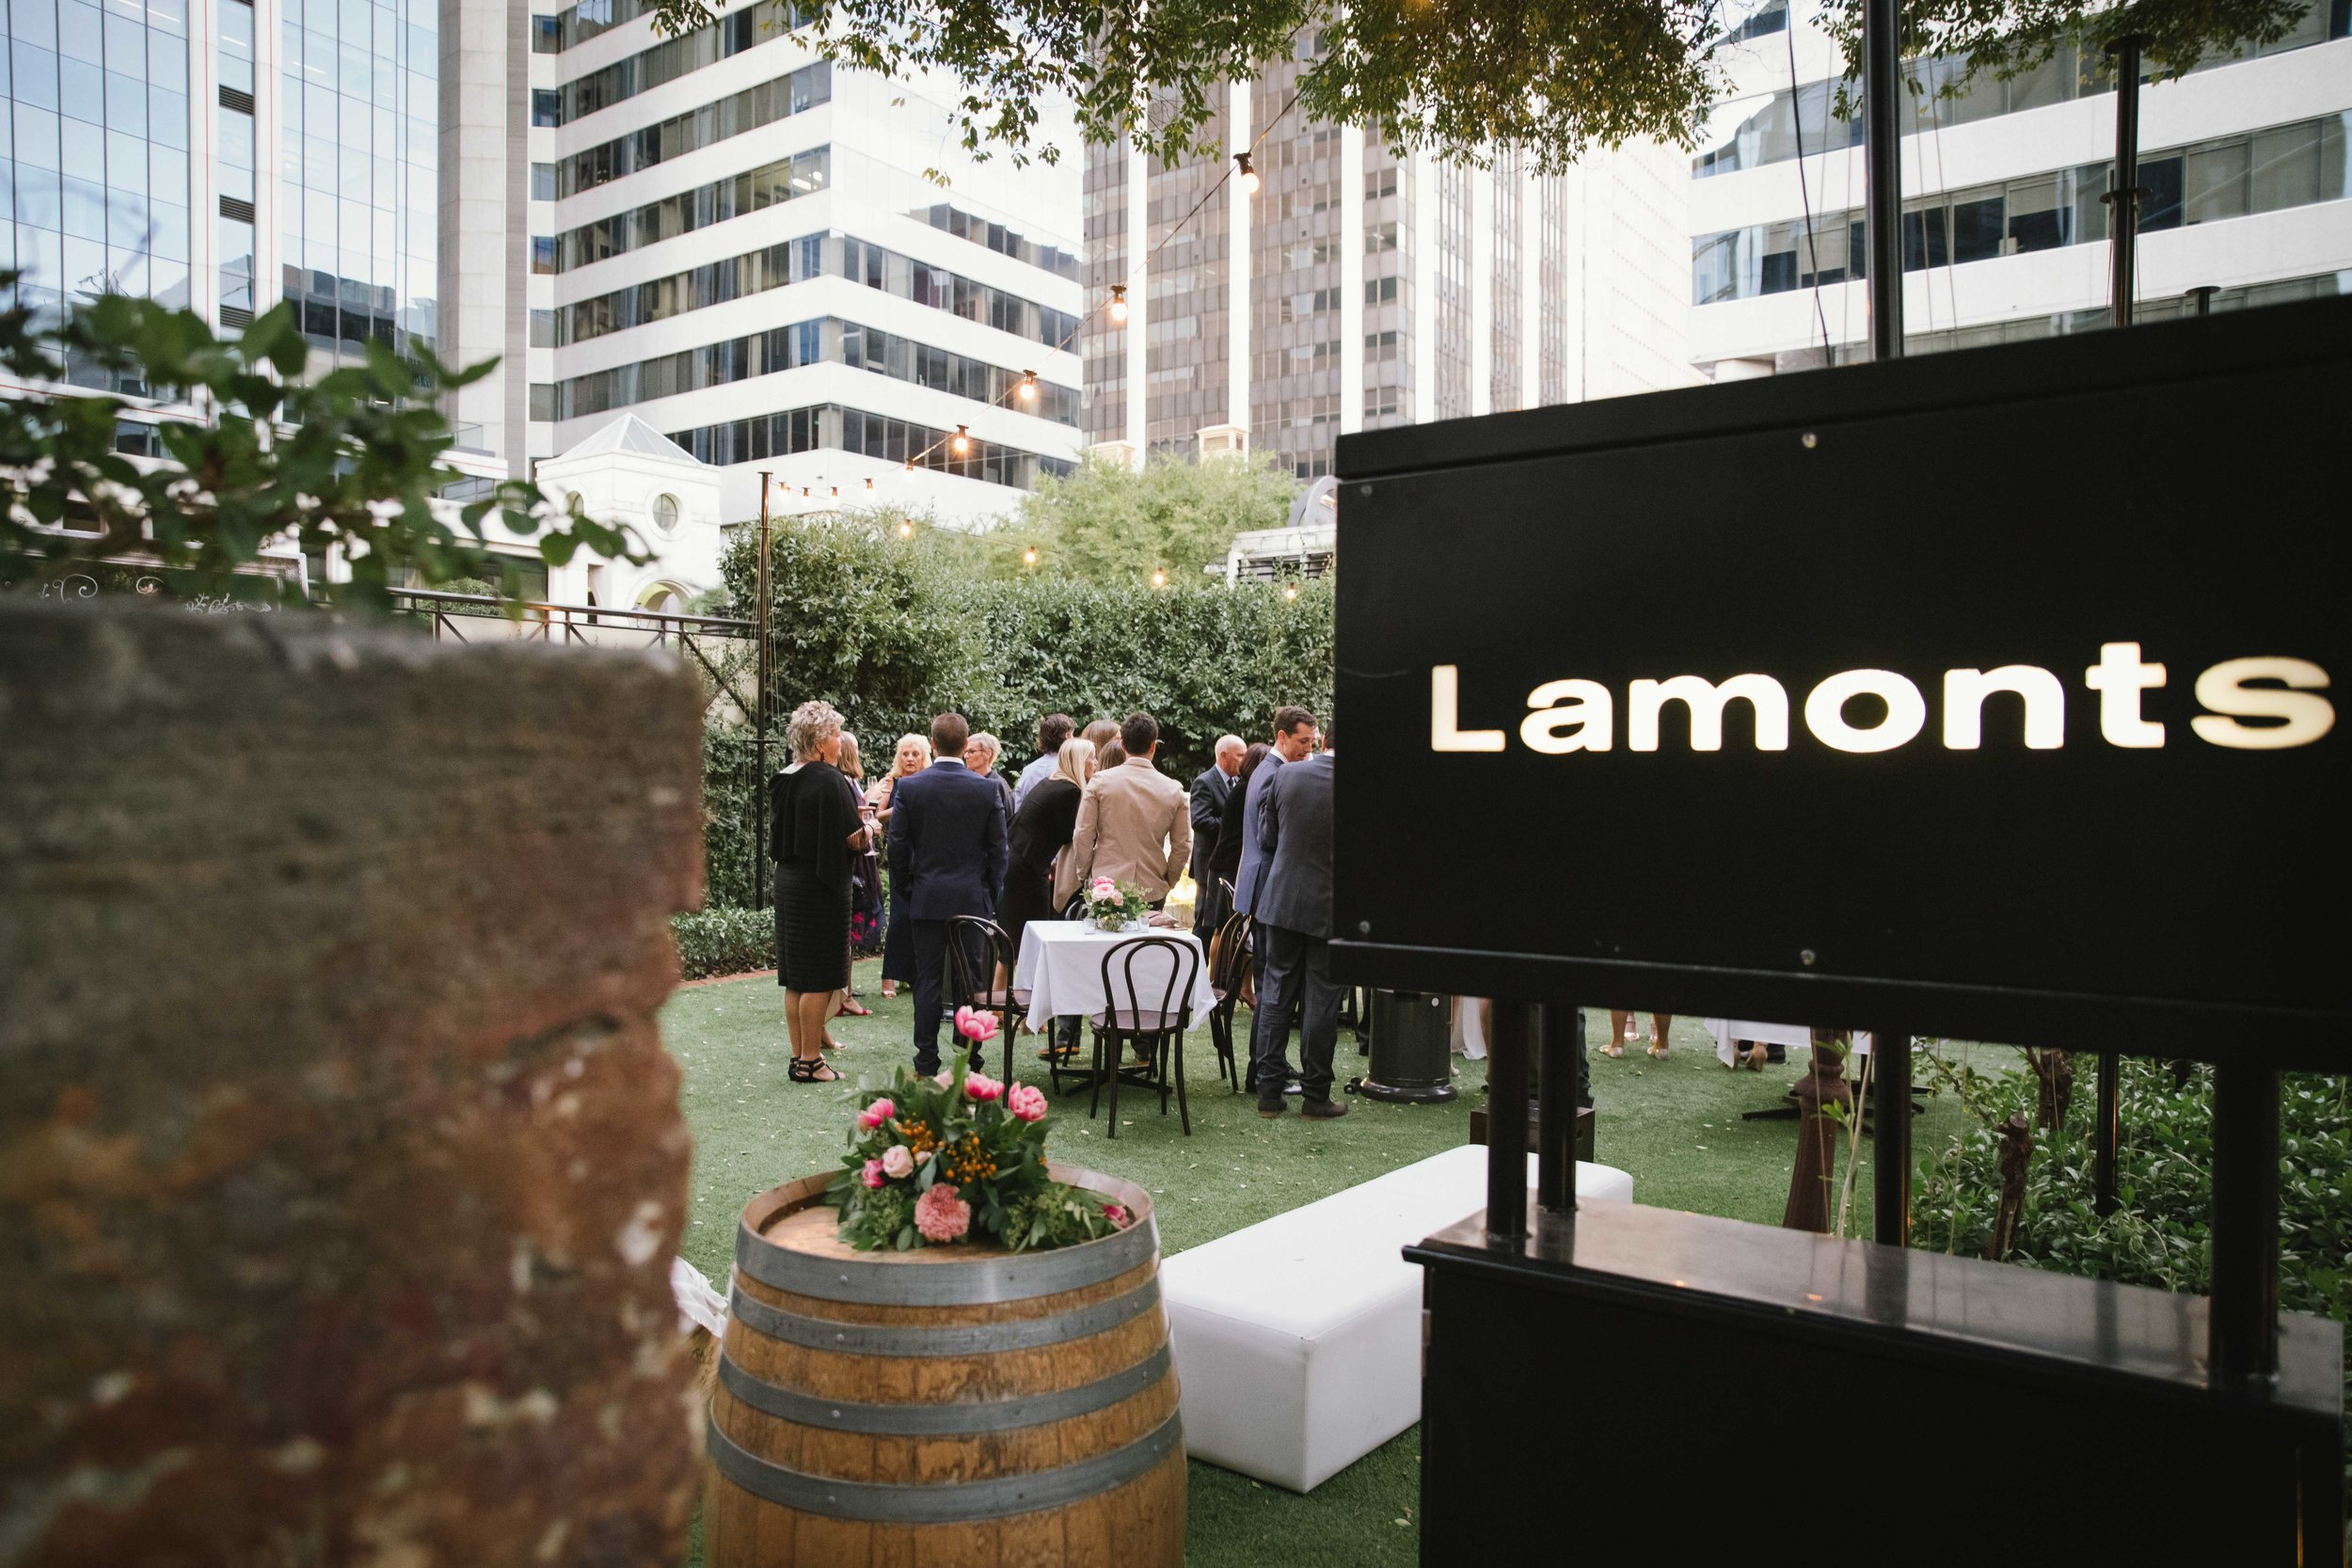 Lamonts Bishops House City Urban Perth Wheatbelt Avon Valley Wedding Photographer Photography (59).jpg